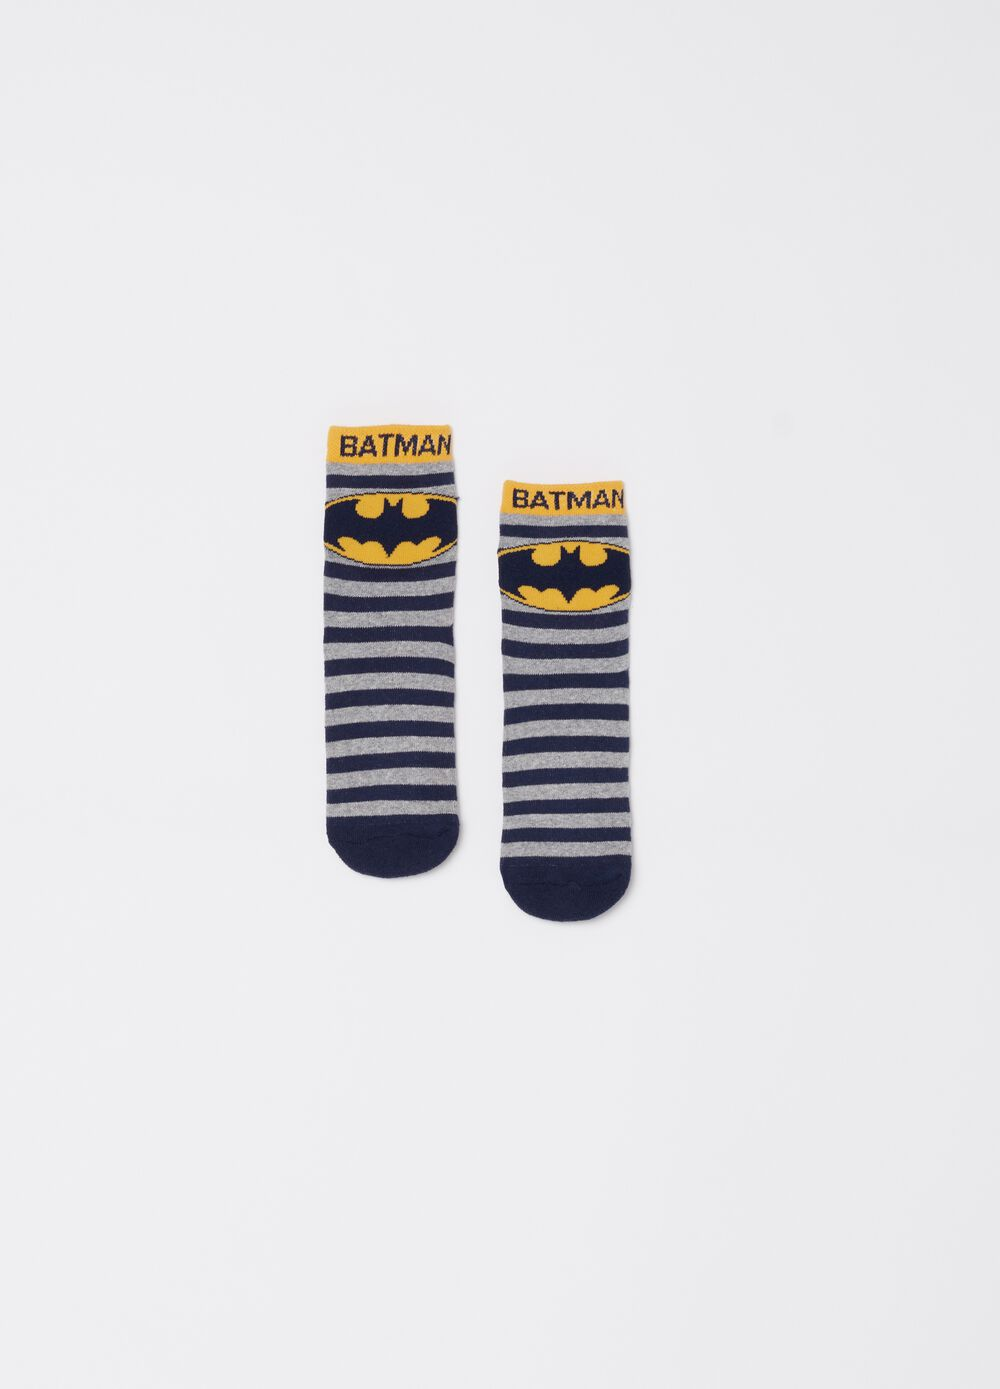 Warner Bros Batman socks with stripes pattern [DC COMICS]